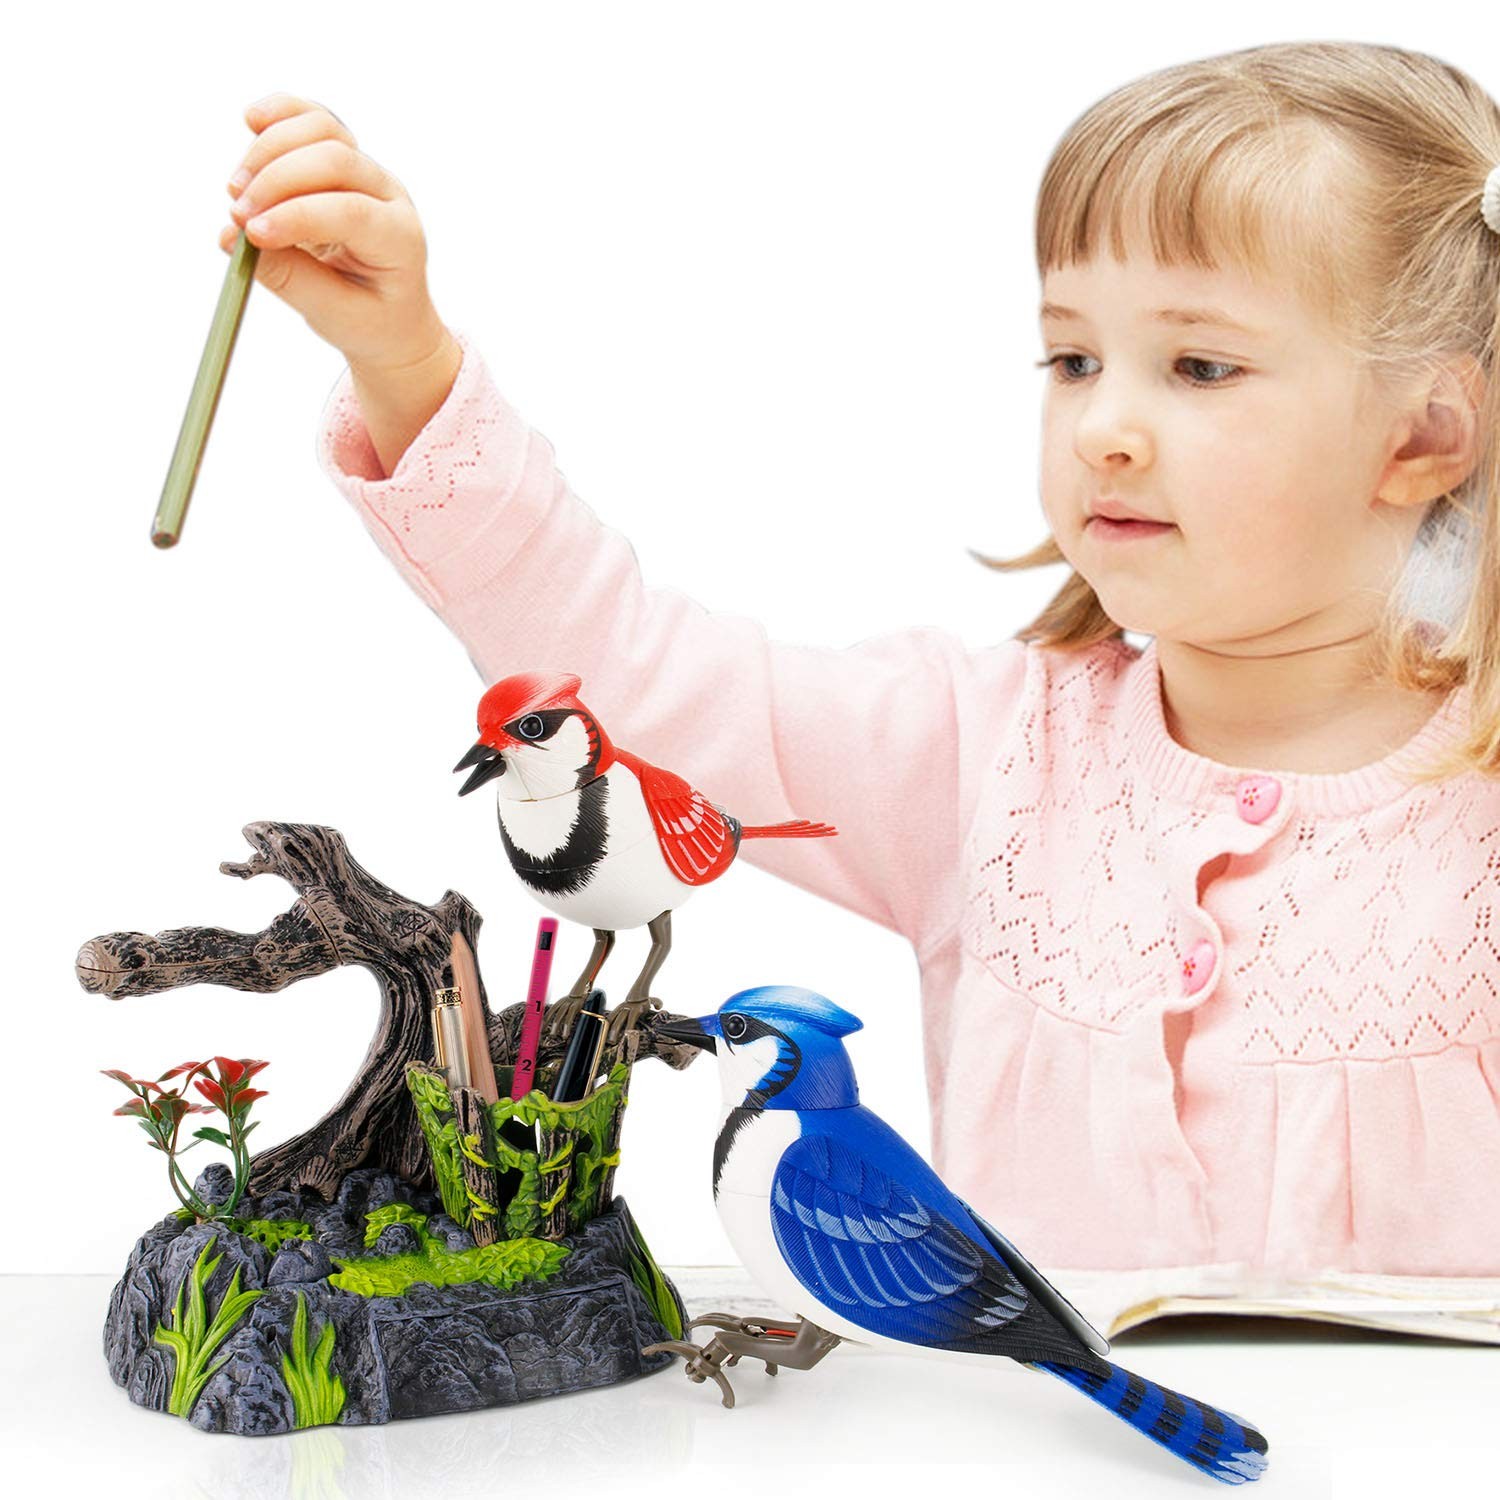 Liberty Imports Singing and Chirping Birds - Realistic Sounds and Movements (Blue Jays) by Liberty Imports (Image #5)